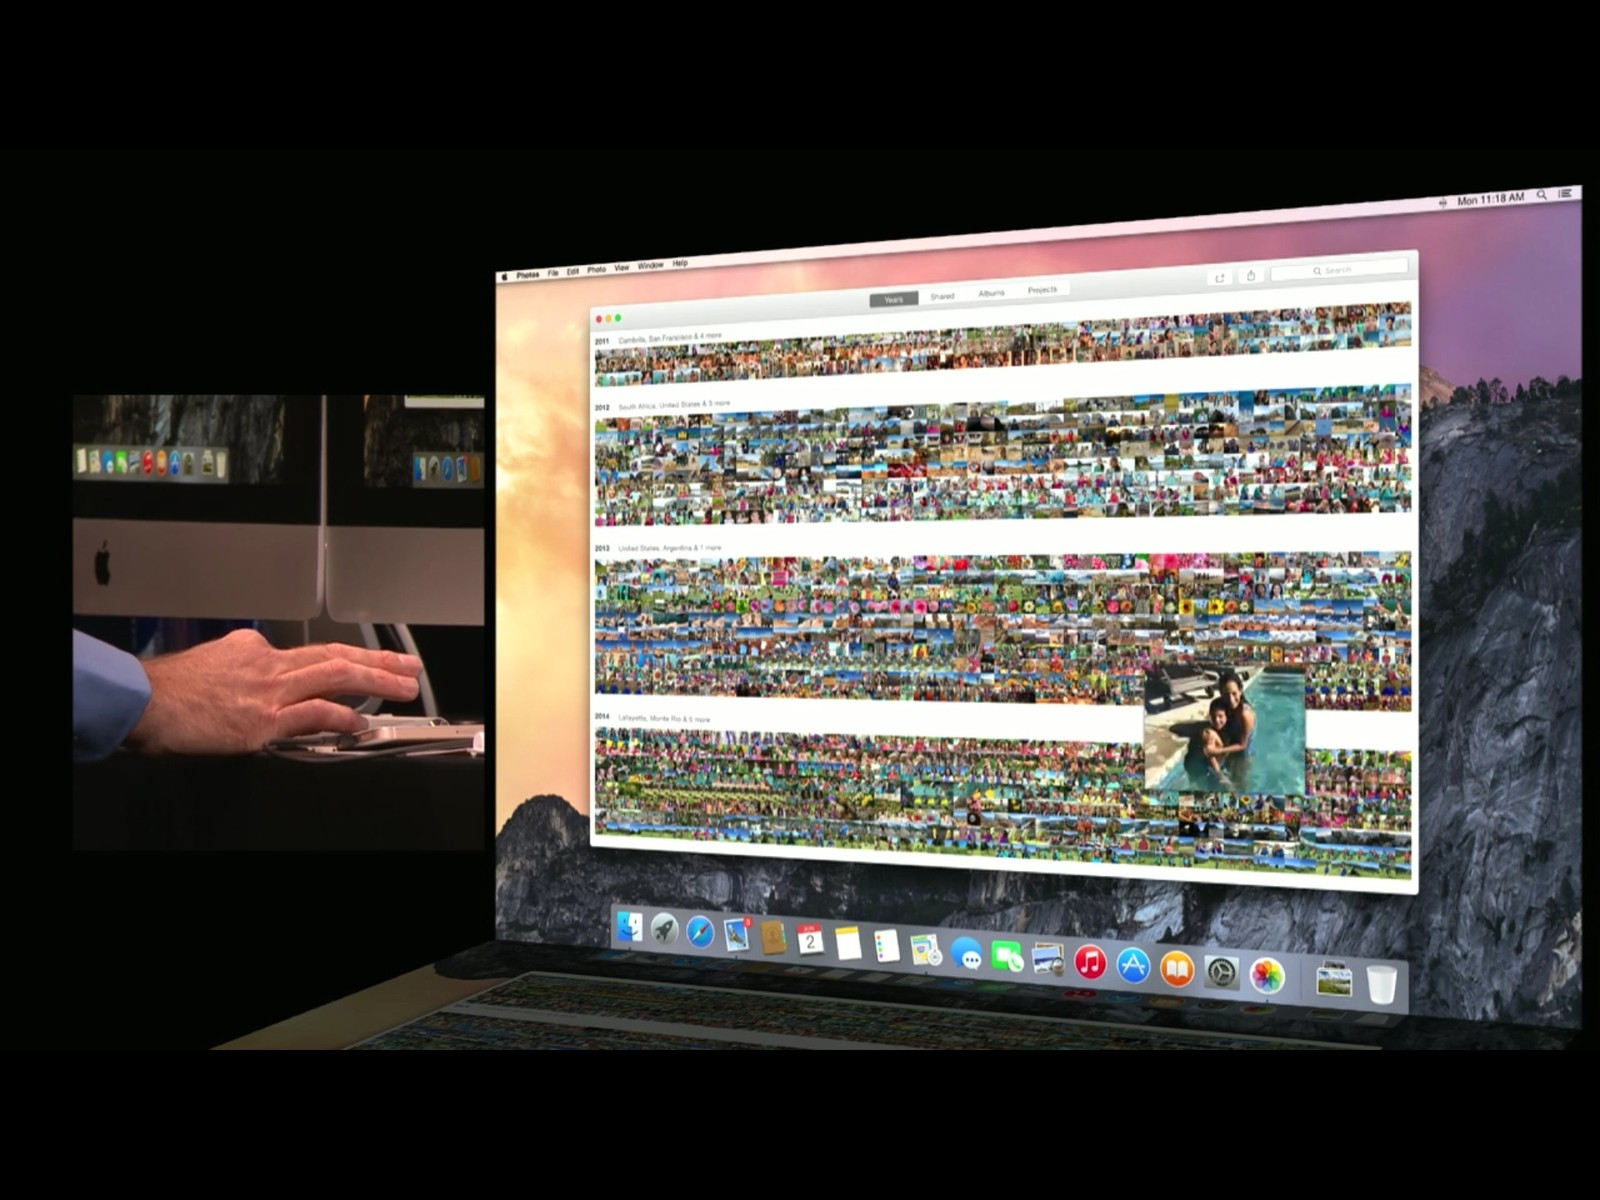 wwdc_2014_photos_mac_years_skim.jpg